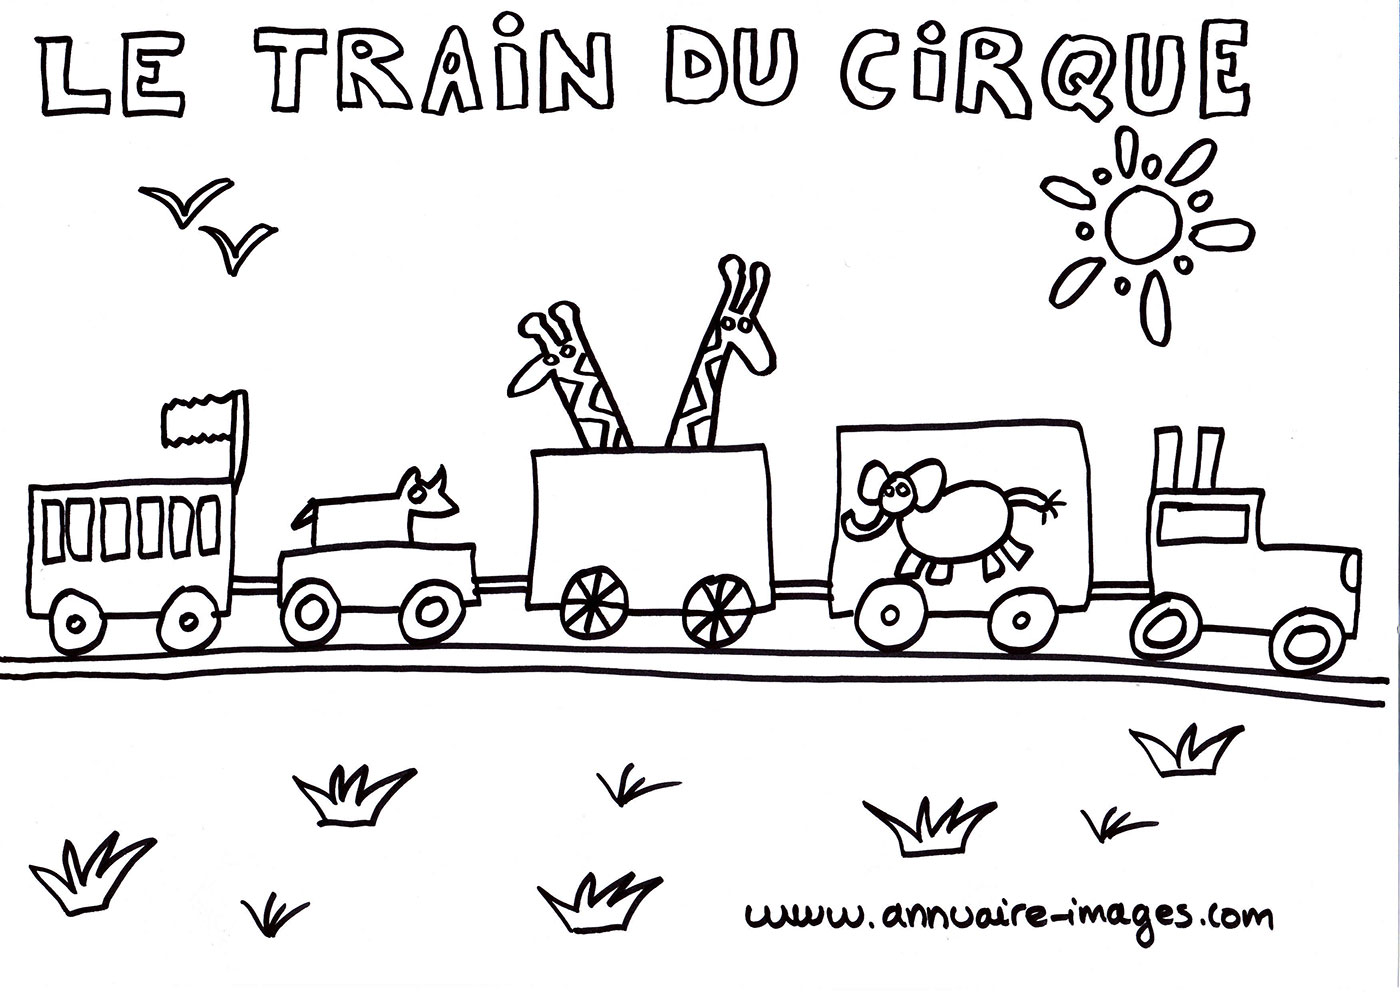 Train du cirque dessin à colorier